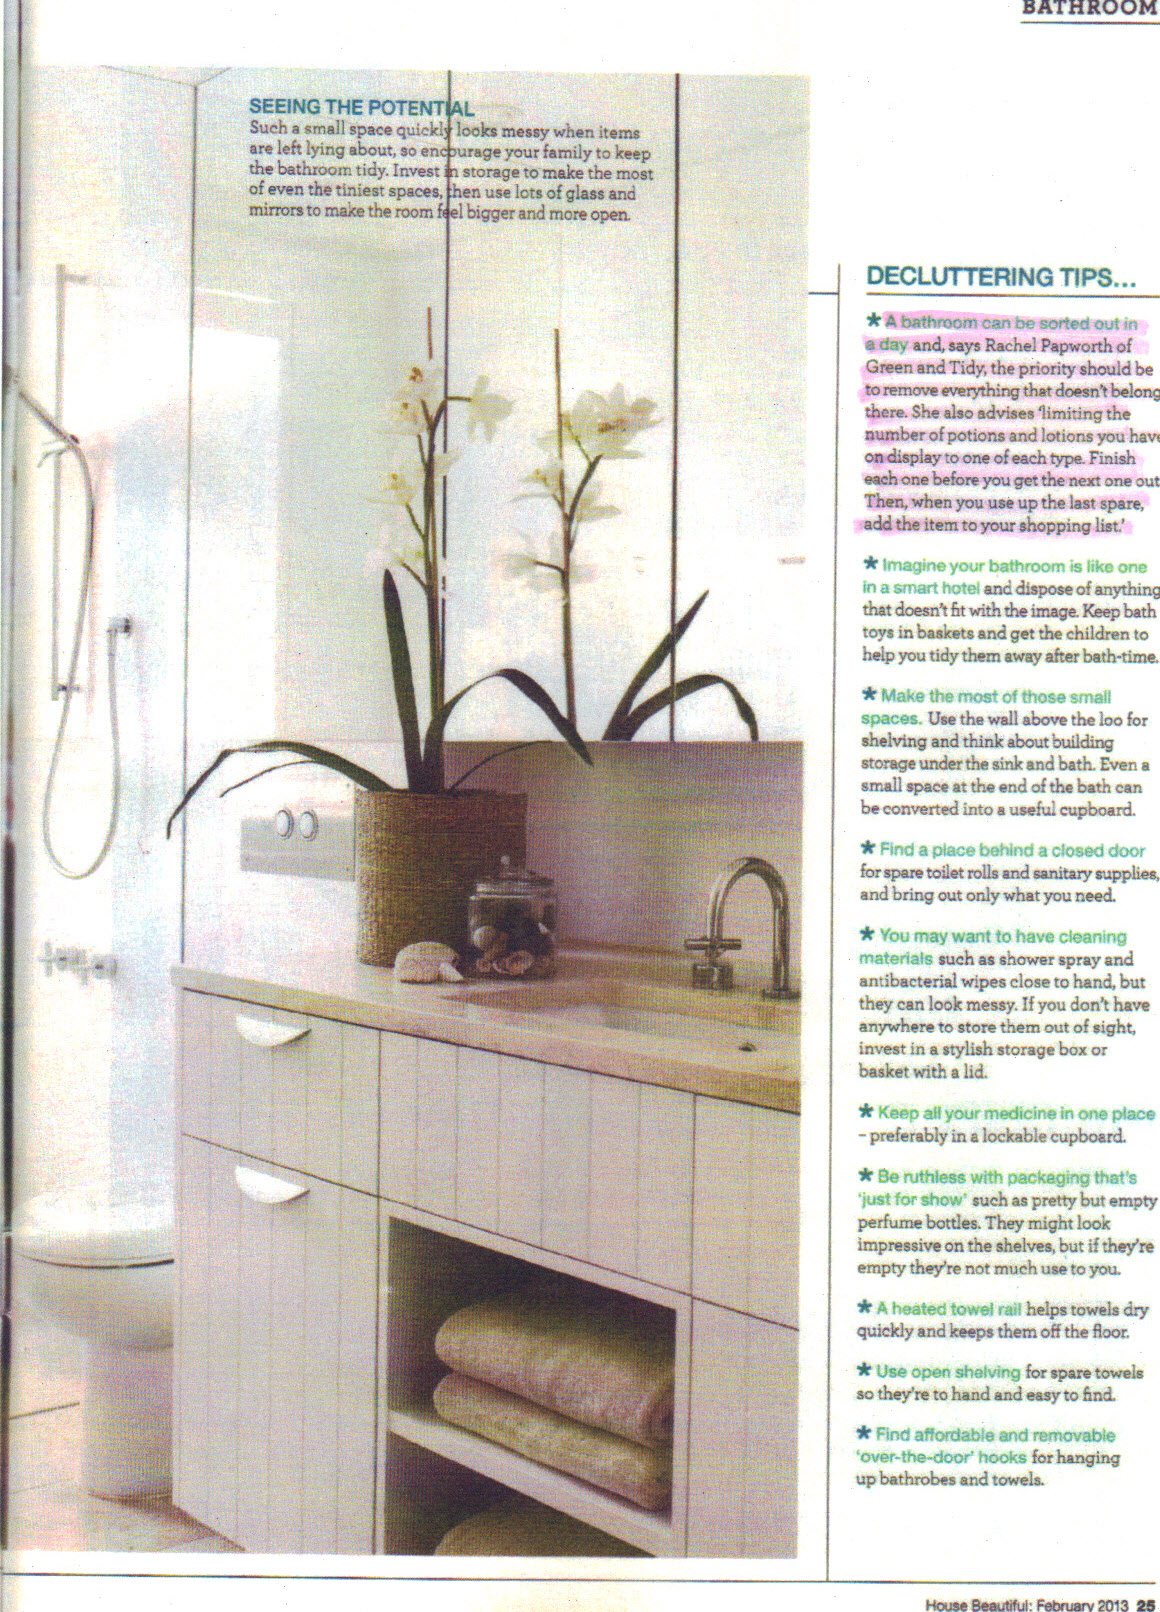 House Beautiful Feb 2013 p25 -  highlight